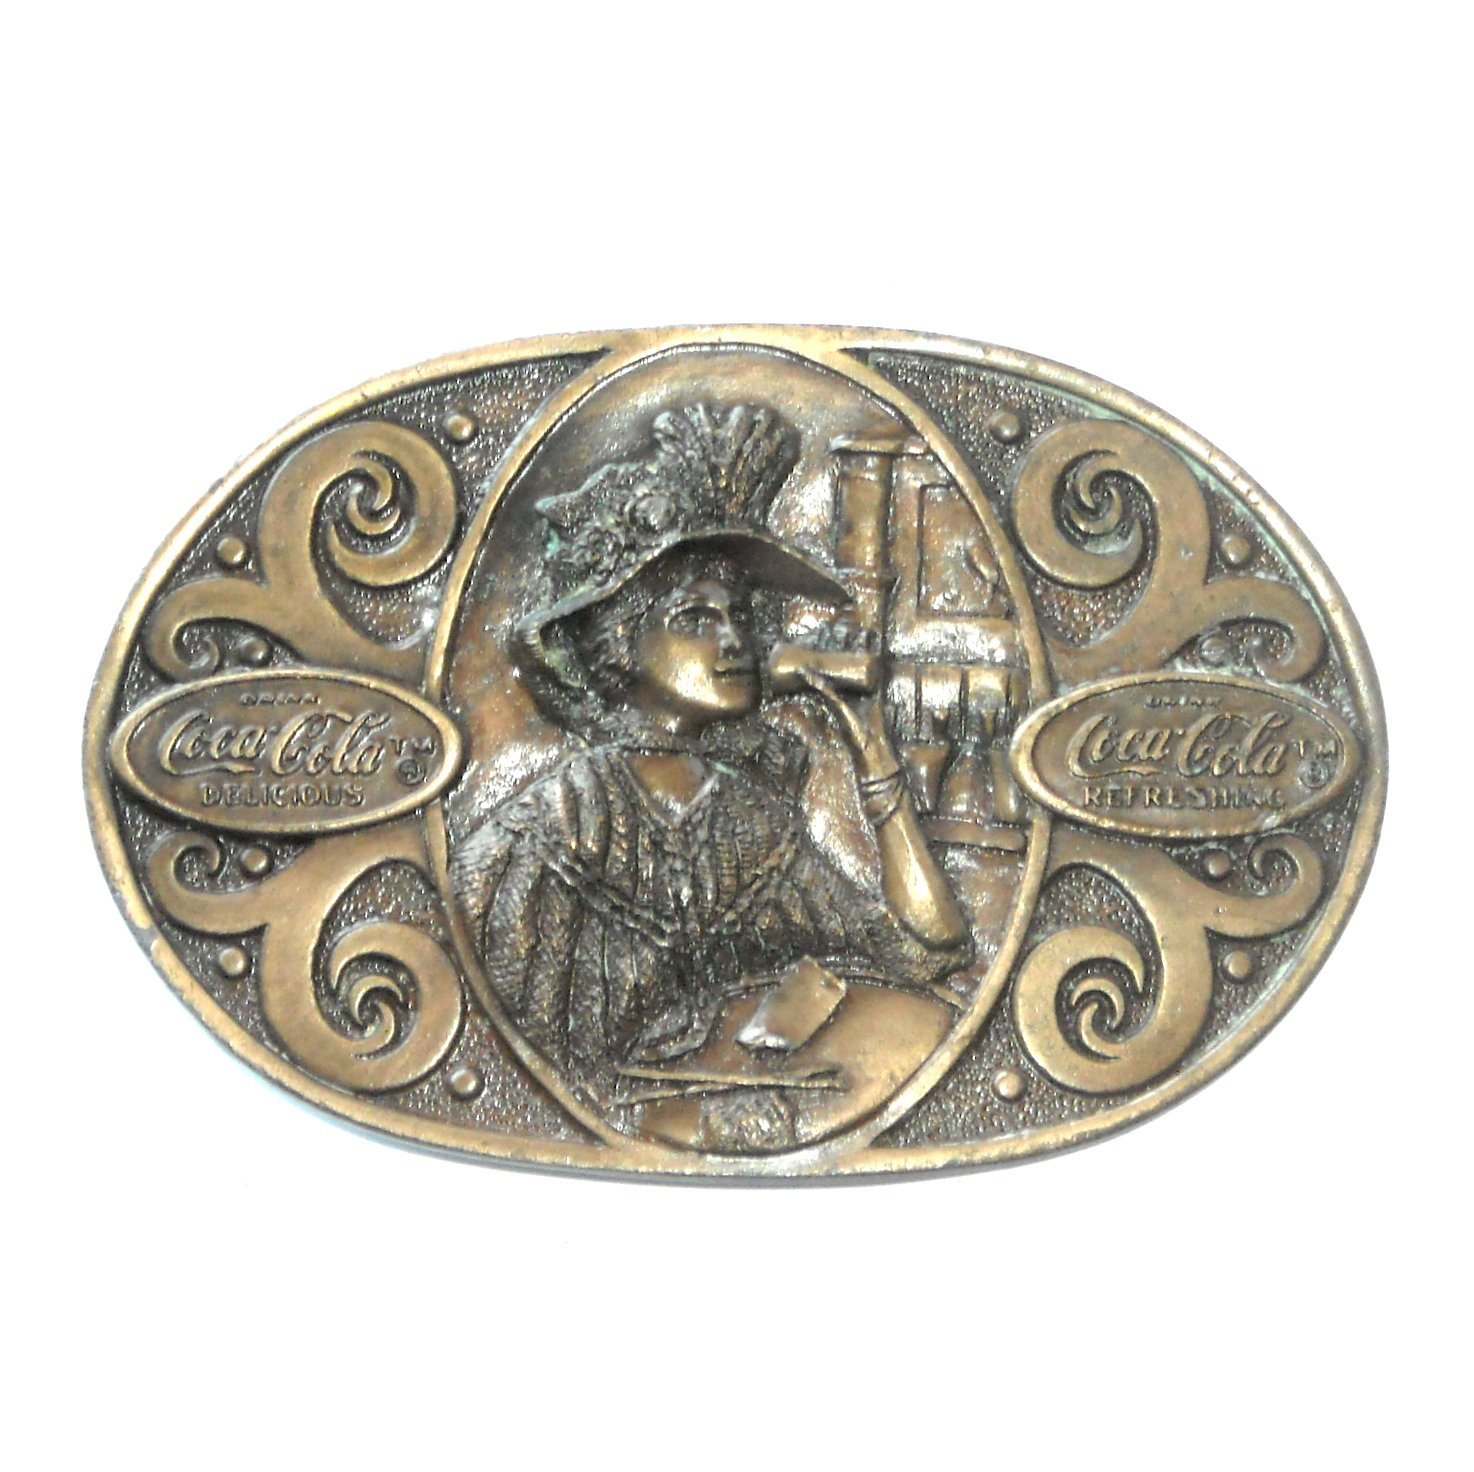 Coca Cola Vintage Bergamot Pewter Brass Color Belt Buckle